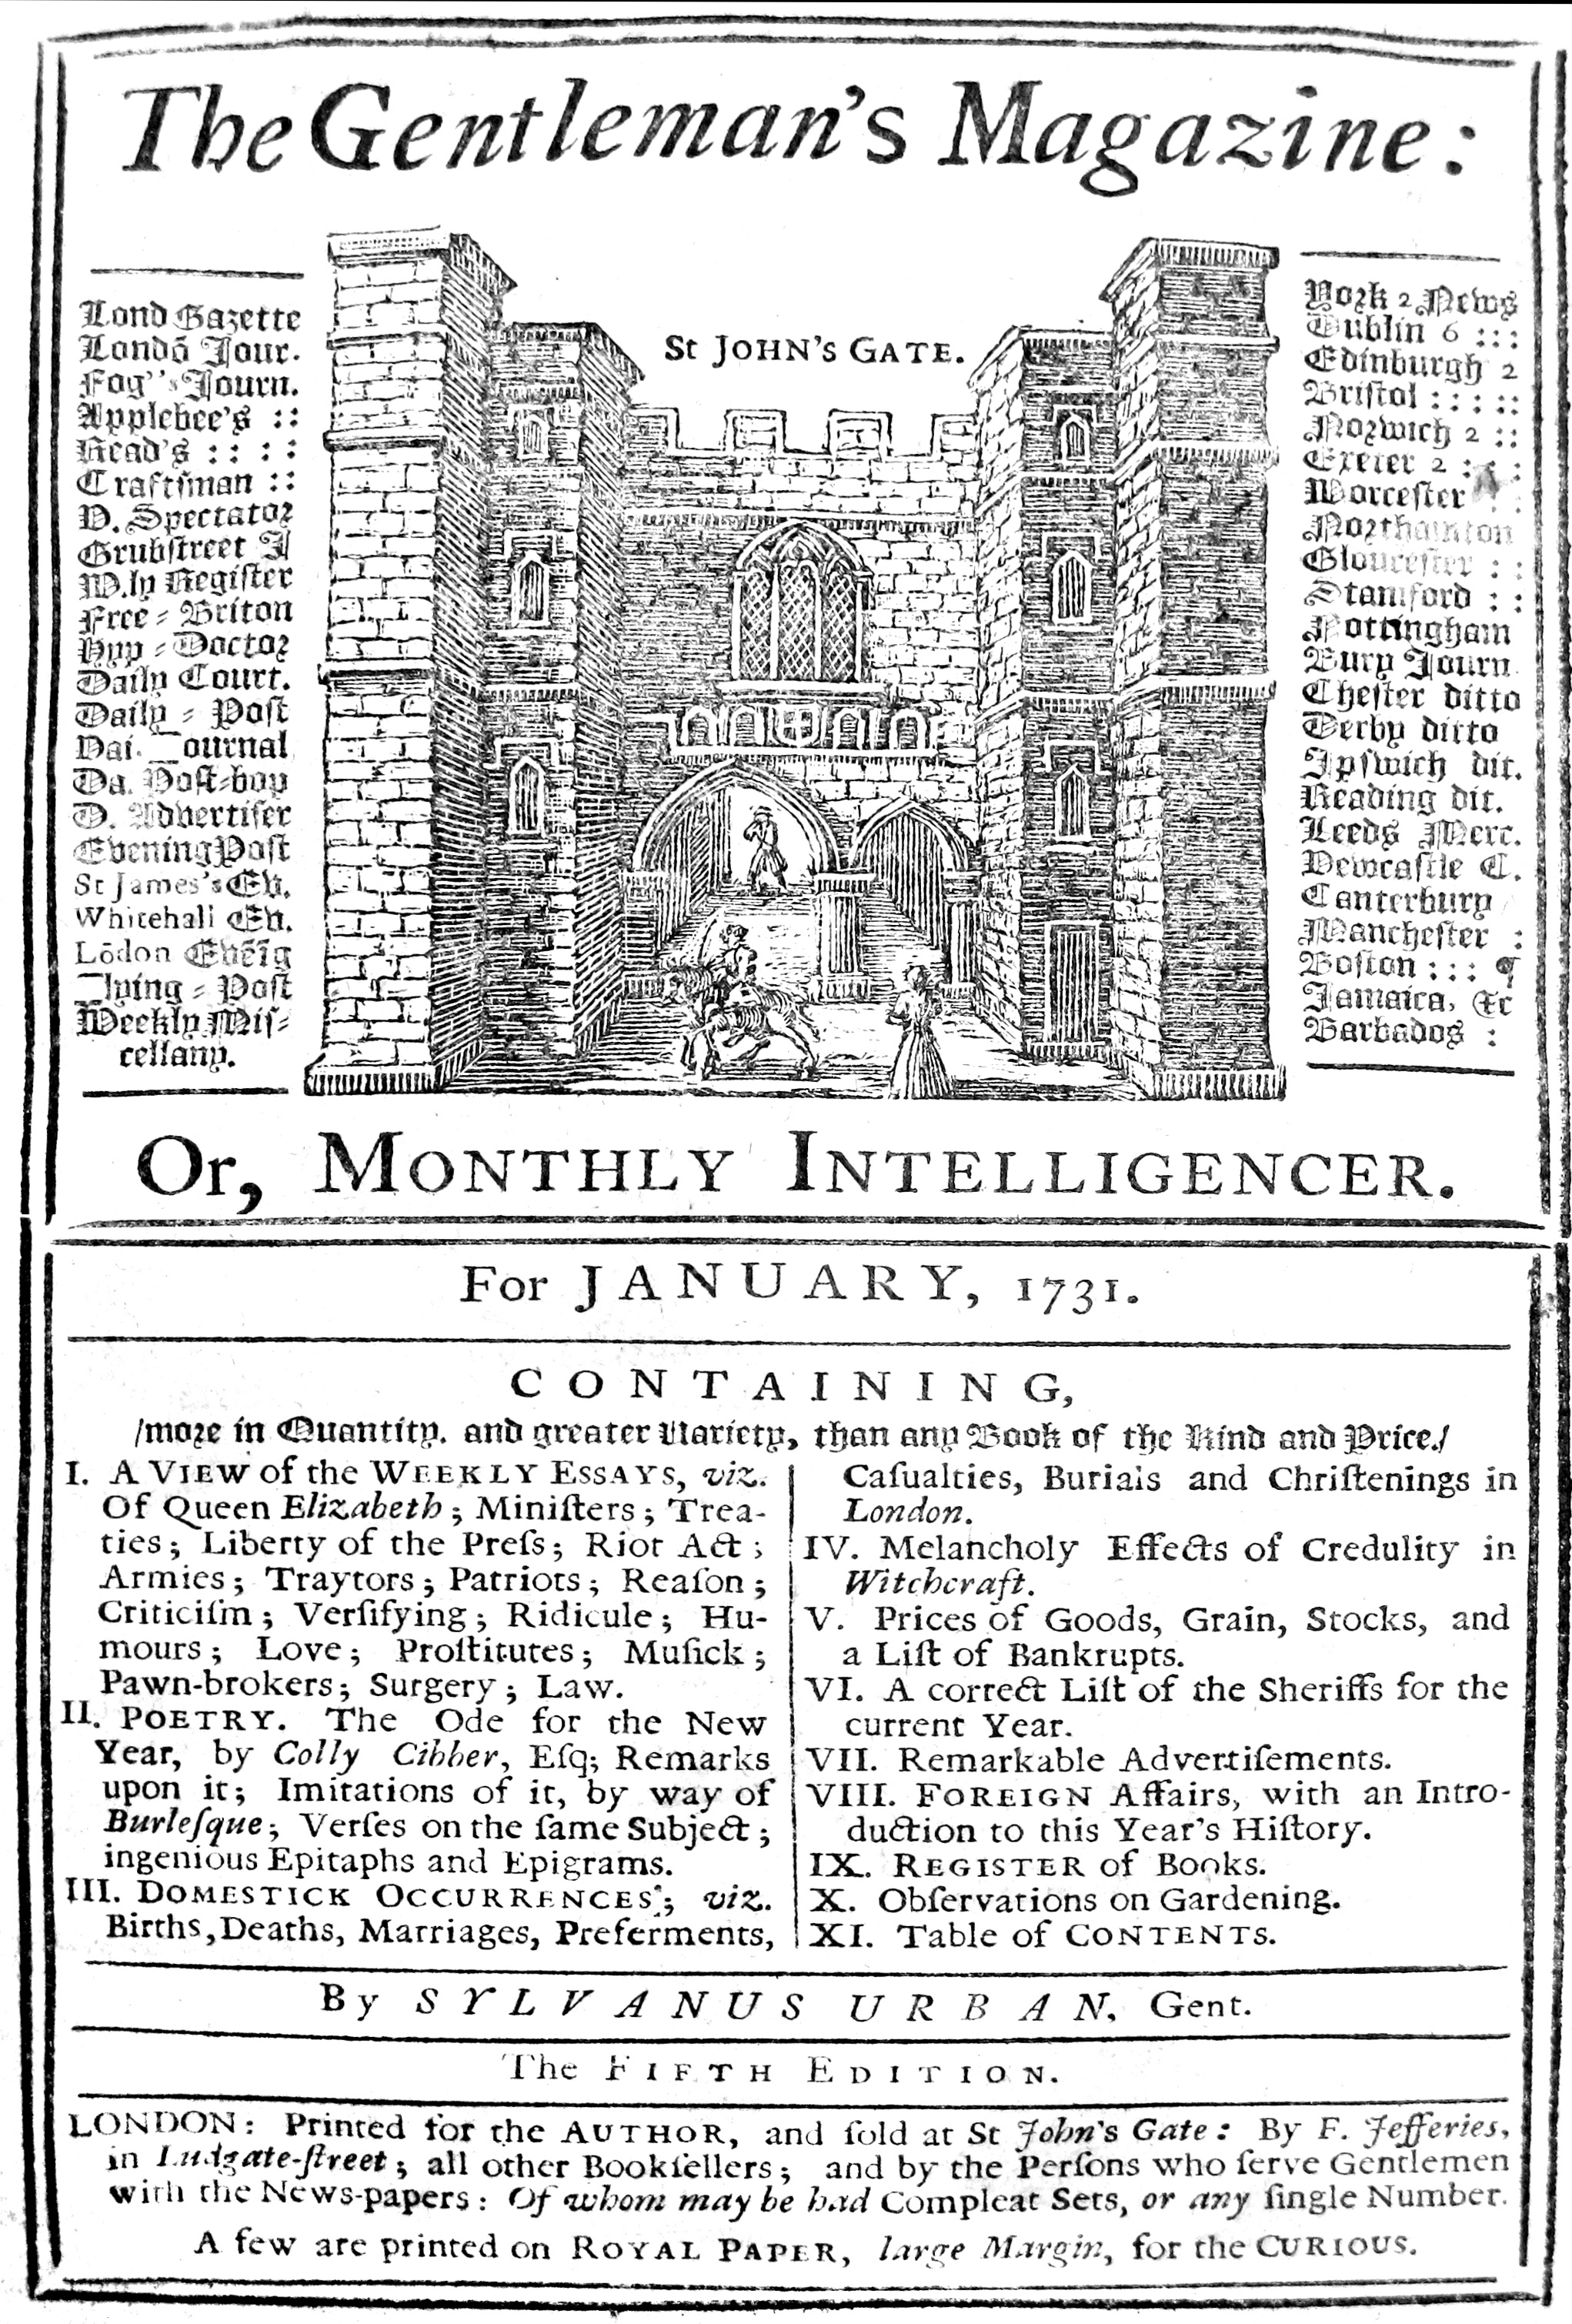 File:Gentleman's Magazine 1731.